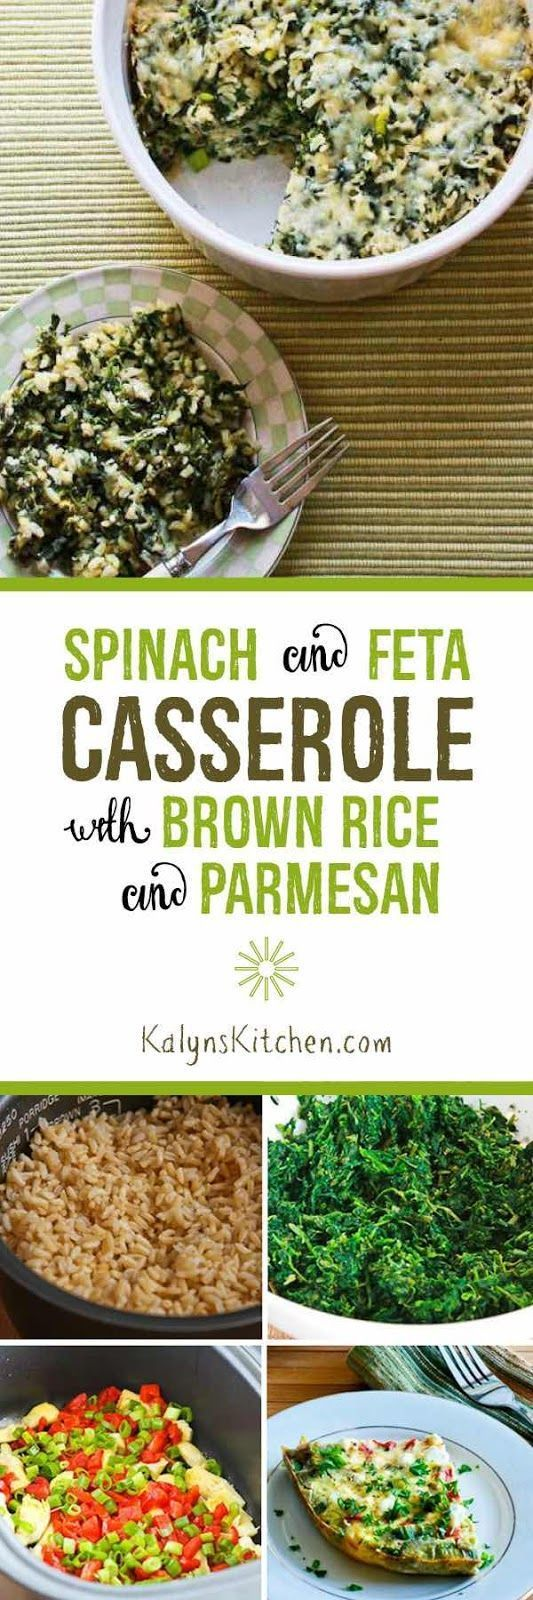 Spinach and Feta Casserole with Brown Rice and Parmesan is delicious for a meatless dinner. PIN this now so you'll have it when the kids go back to school!  [found on http://KalynsKitchen.com]